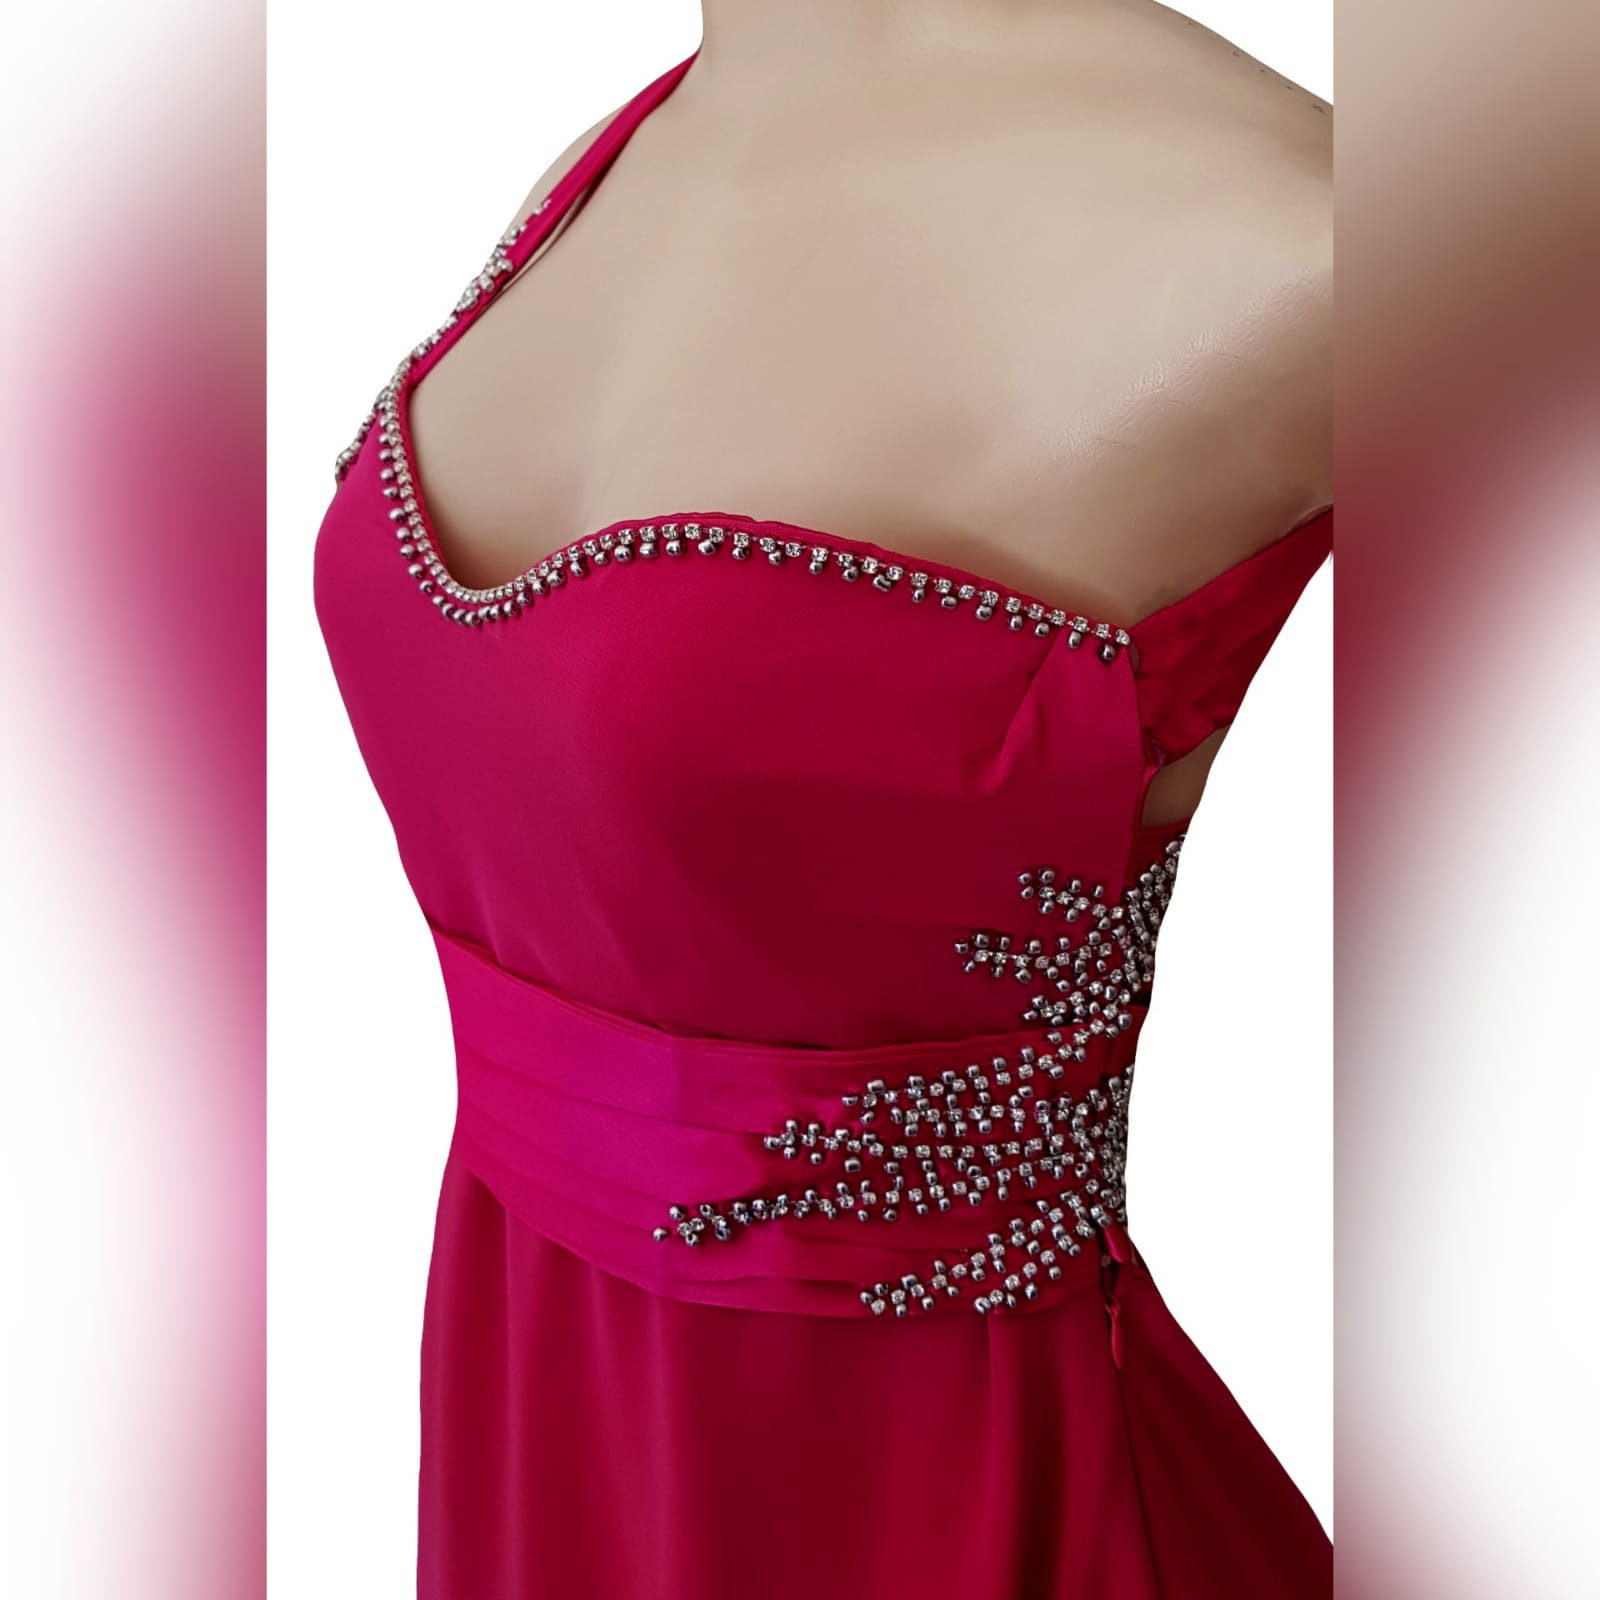 Cerise pink long flowy sexy evening dress 5 cerise pink long flowy sexy evening dress with a slit. One shoulder with a sweetheart neckline. Open back detailed with wide straps. Pleated belt. Dress beaded with silver.